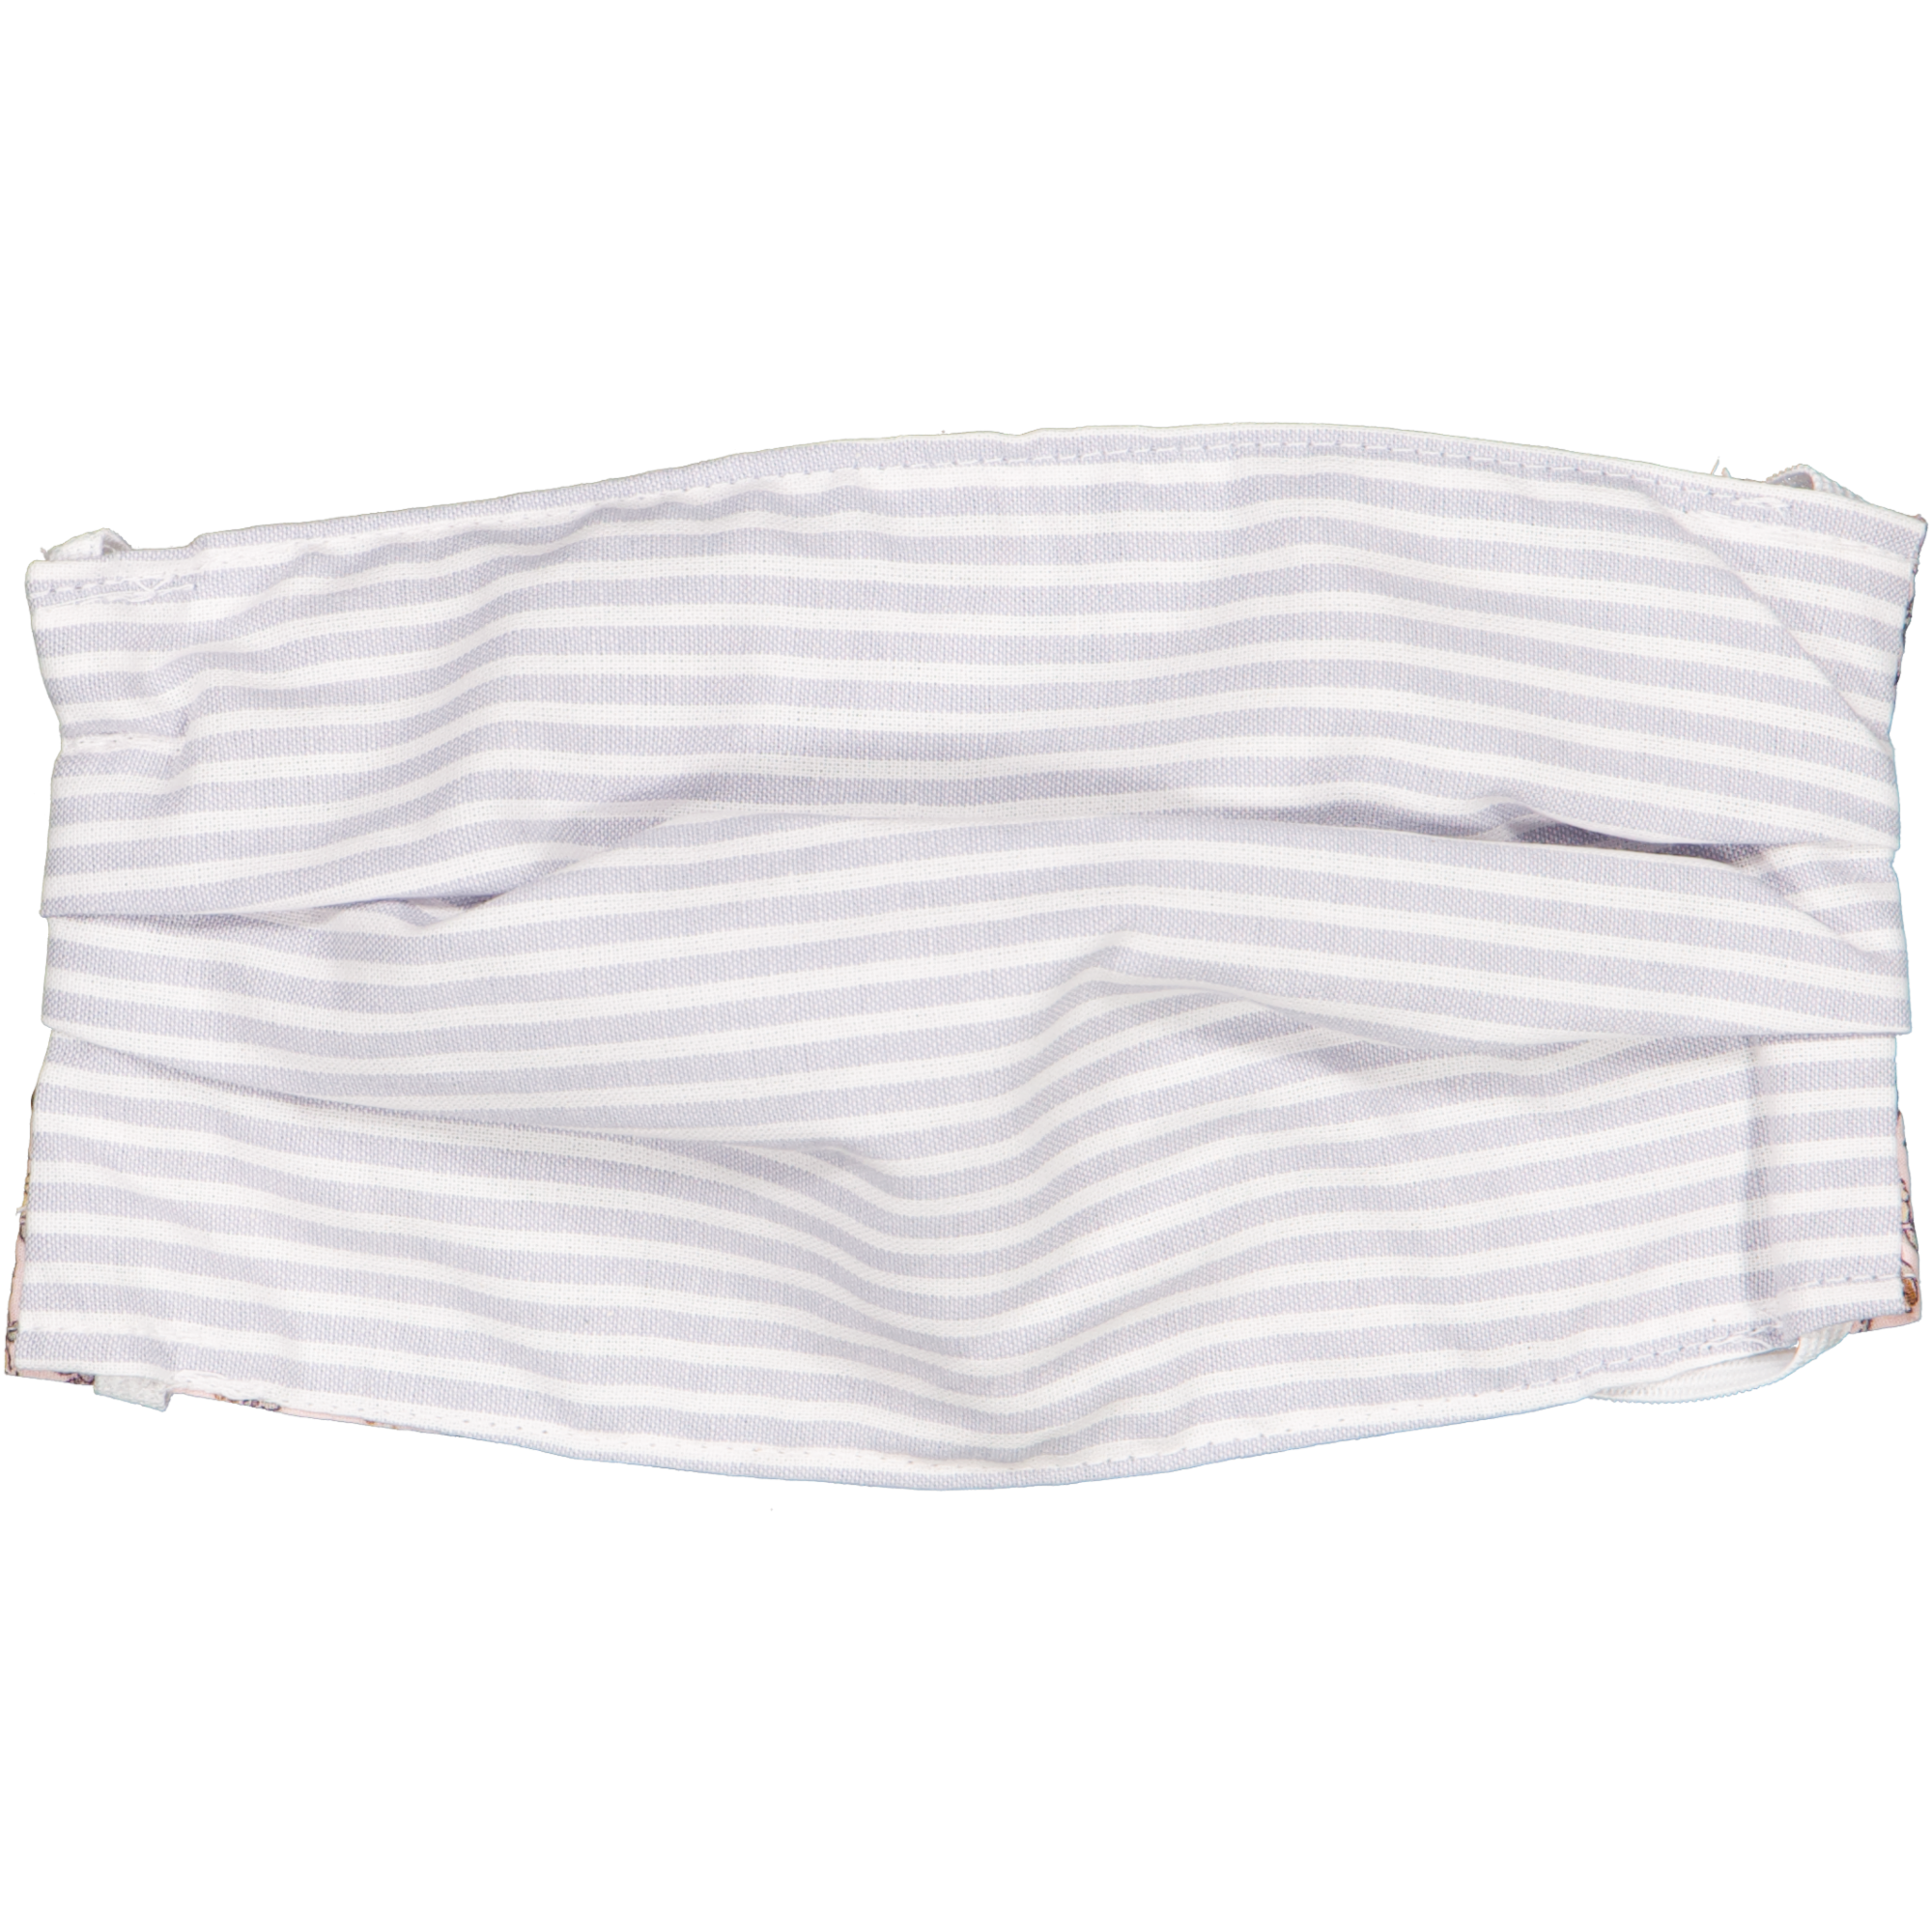 Kids Face Mask - Summer Mulberry with Silver Stripe